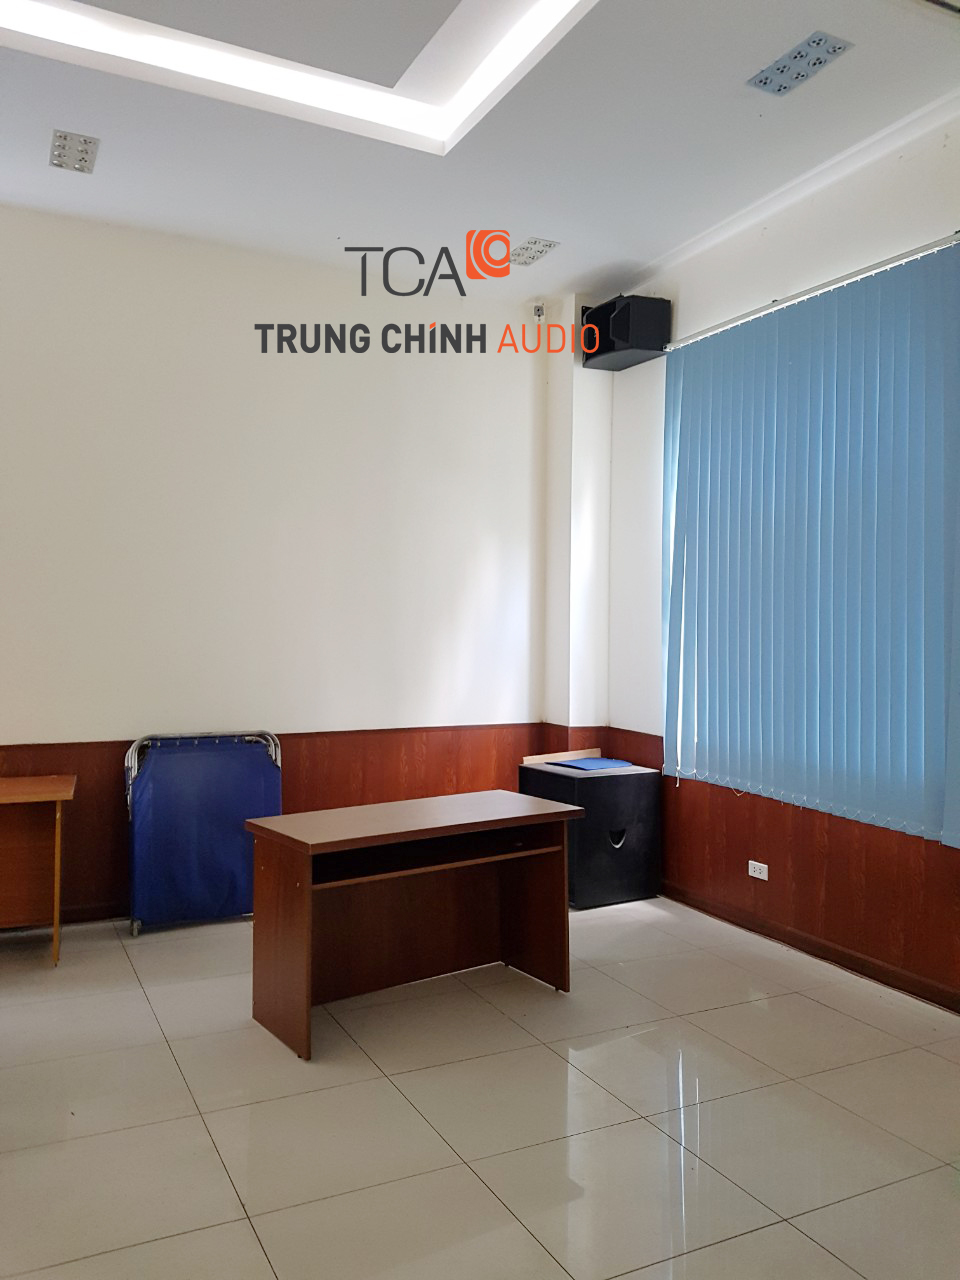 tca-lap-dat-am-thanh-nha-may-nuoc-sach-quan-12-002